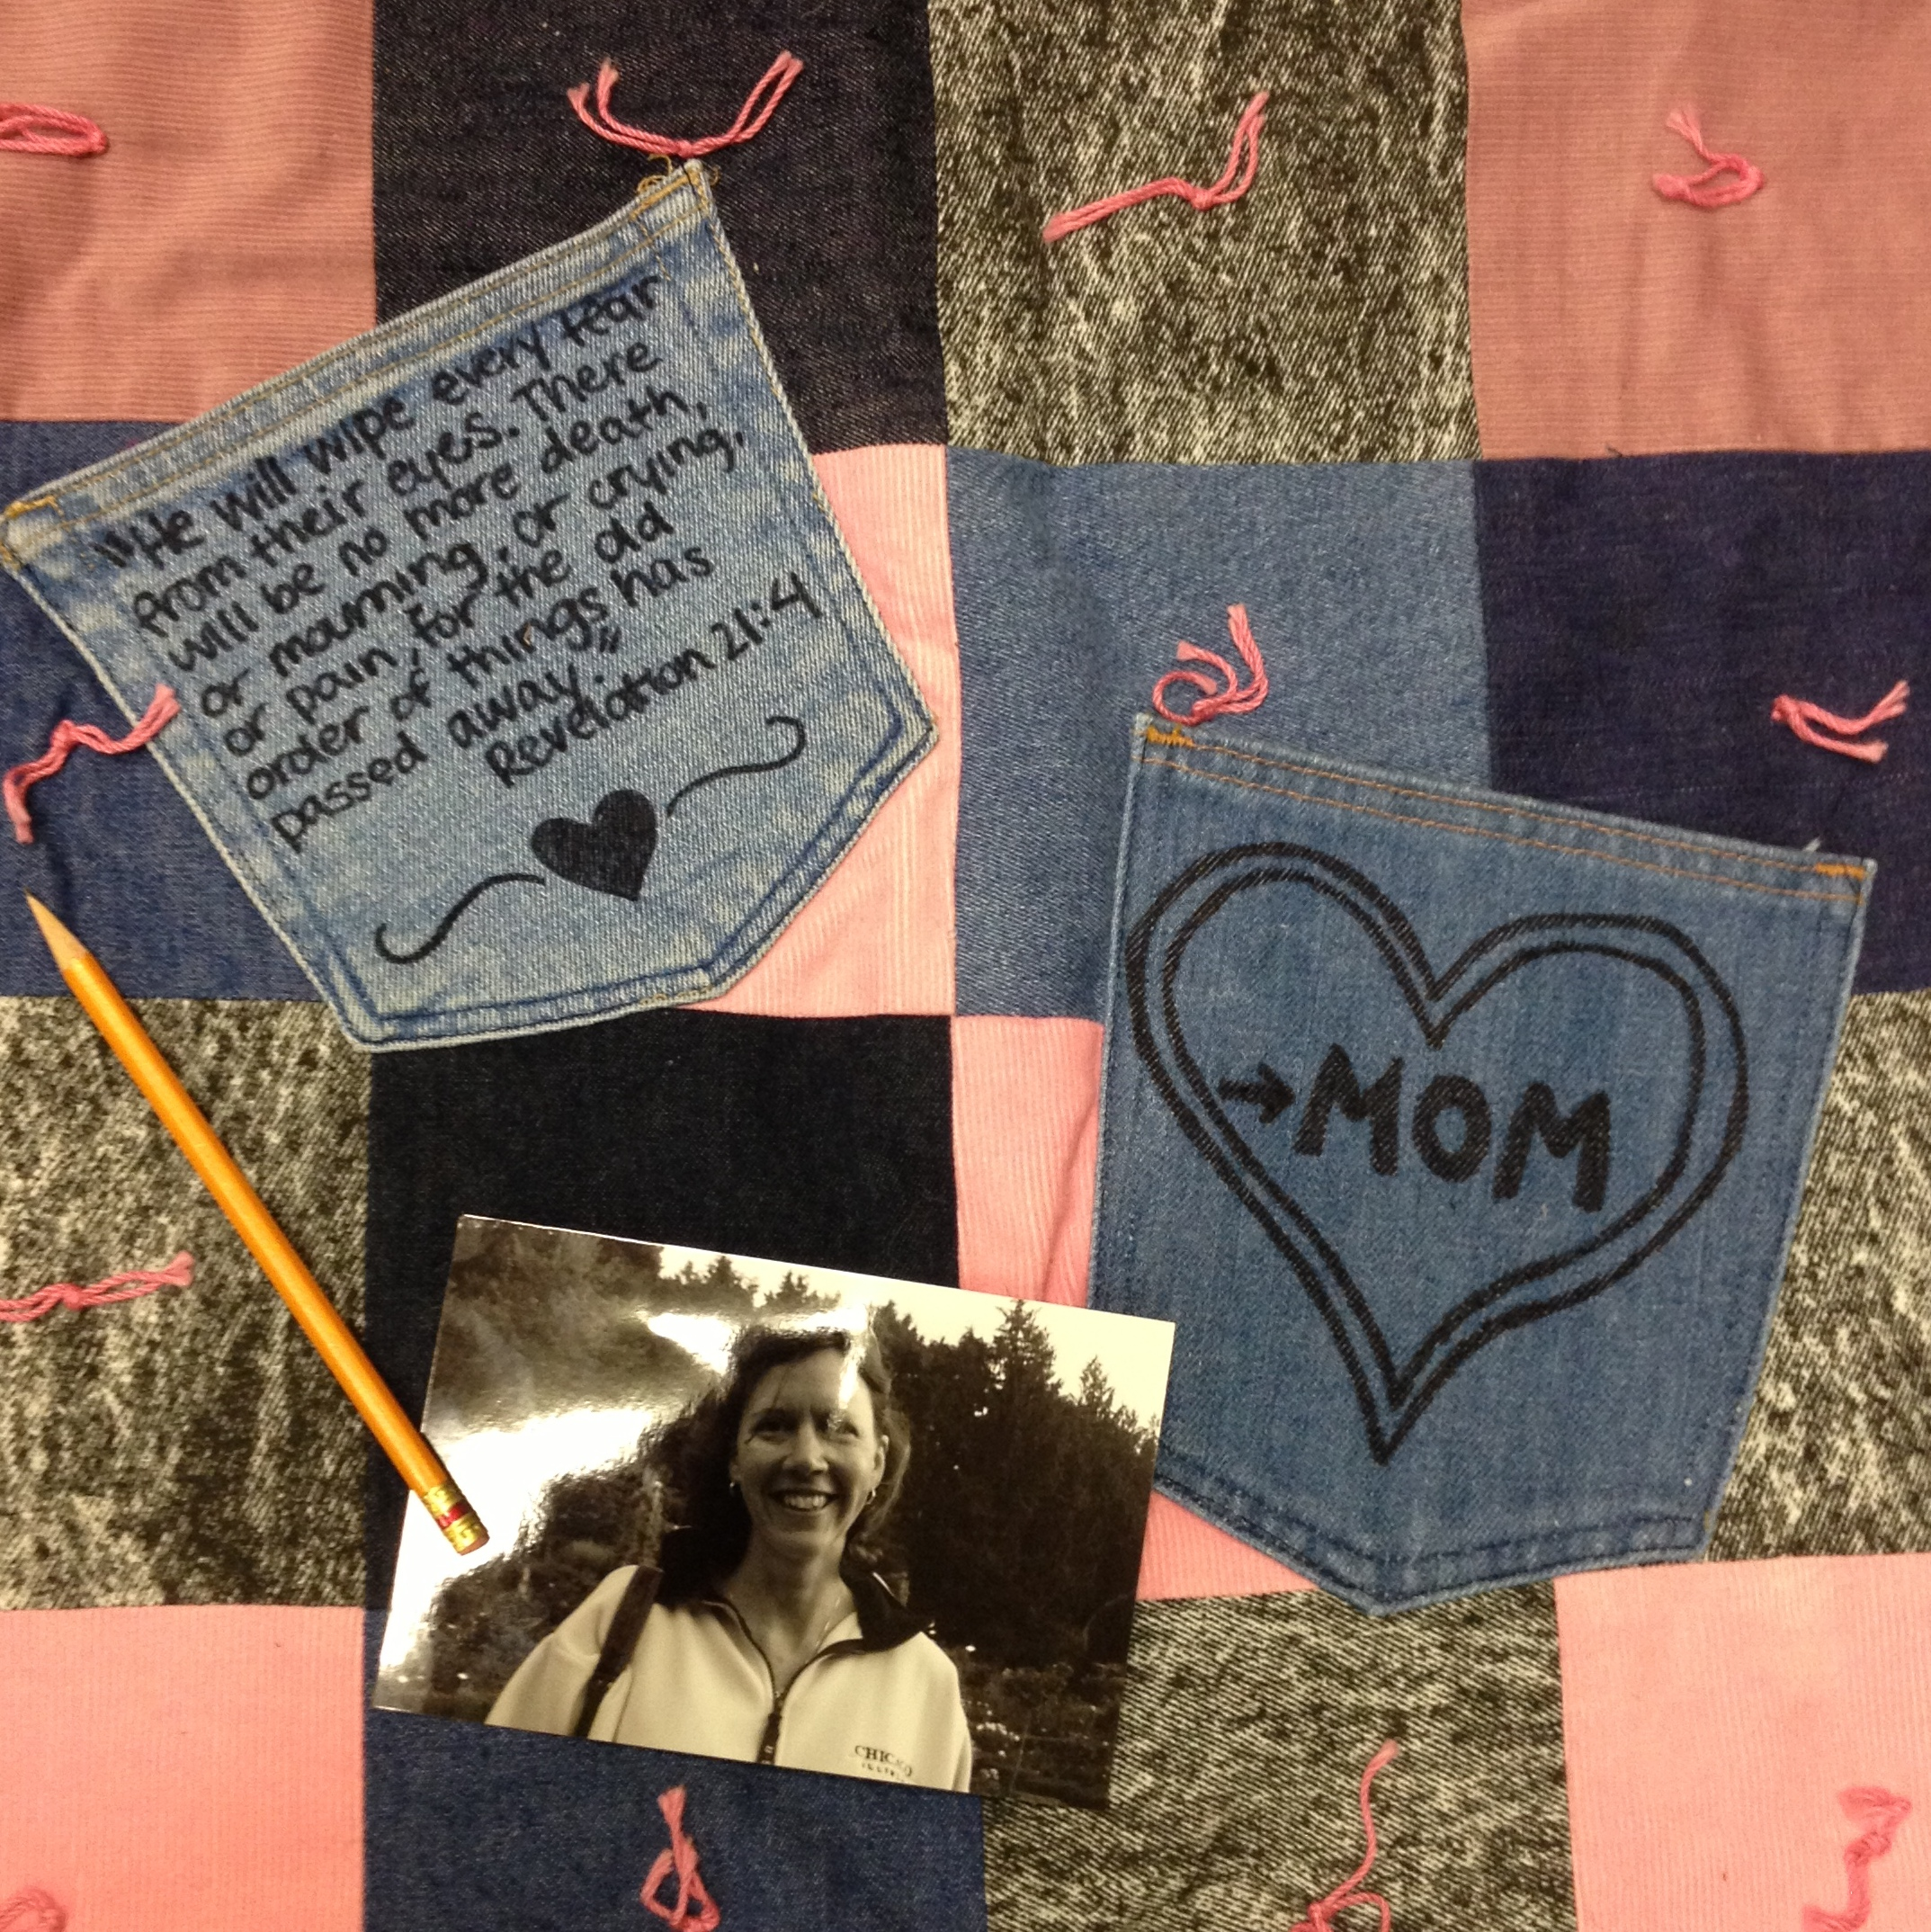 mom quilt with revelation verse